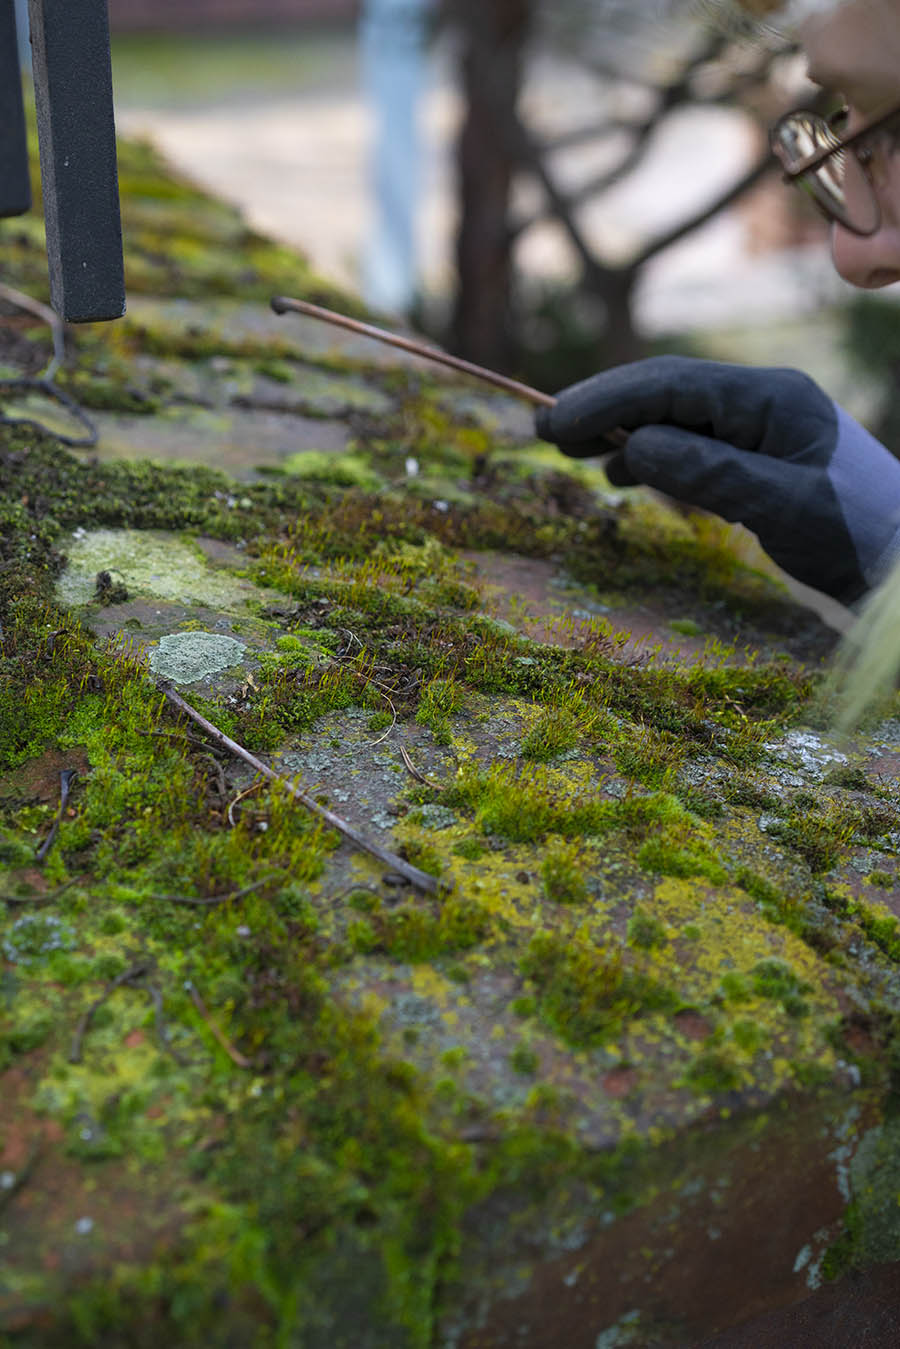 A gardener examines a patch of moss on a wall of Klosterruine